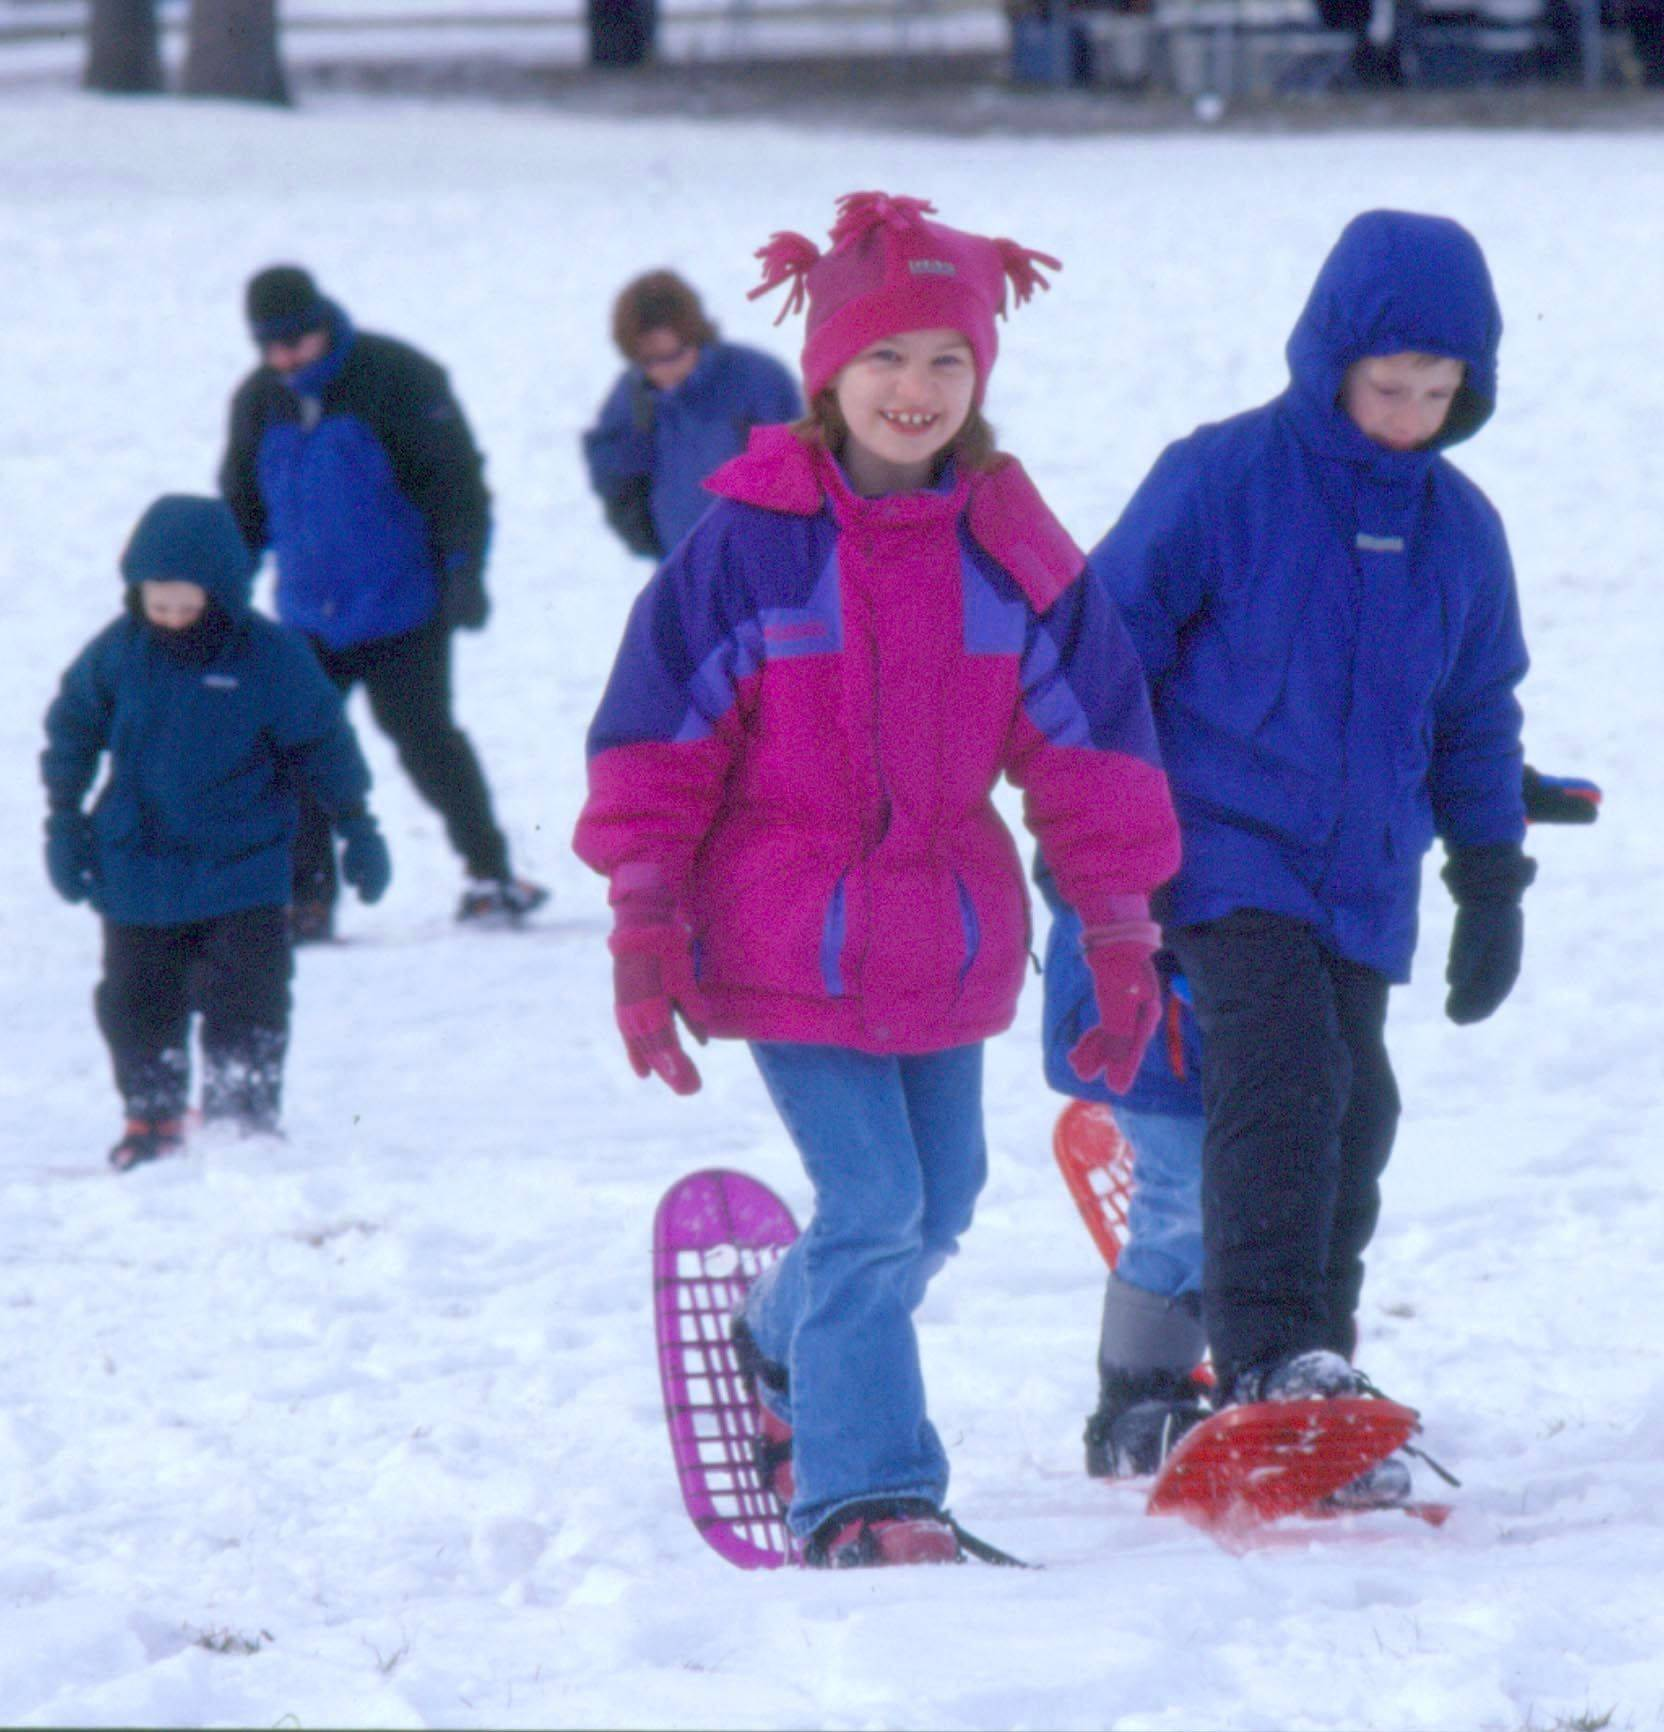 Families can rent snowshoes when there's 4 inches of snow or more at the Morton Arboretum in Lisle.